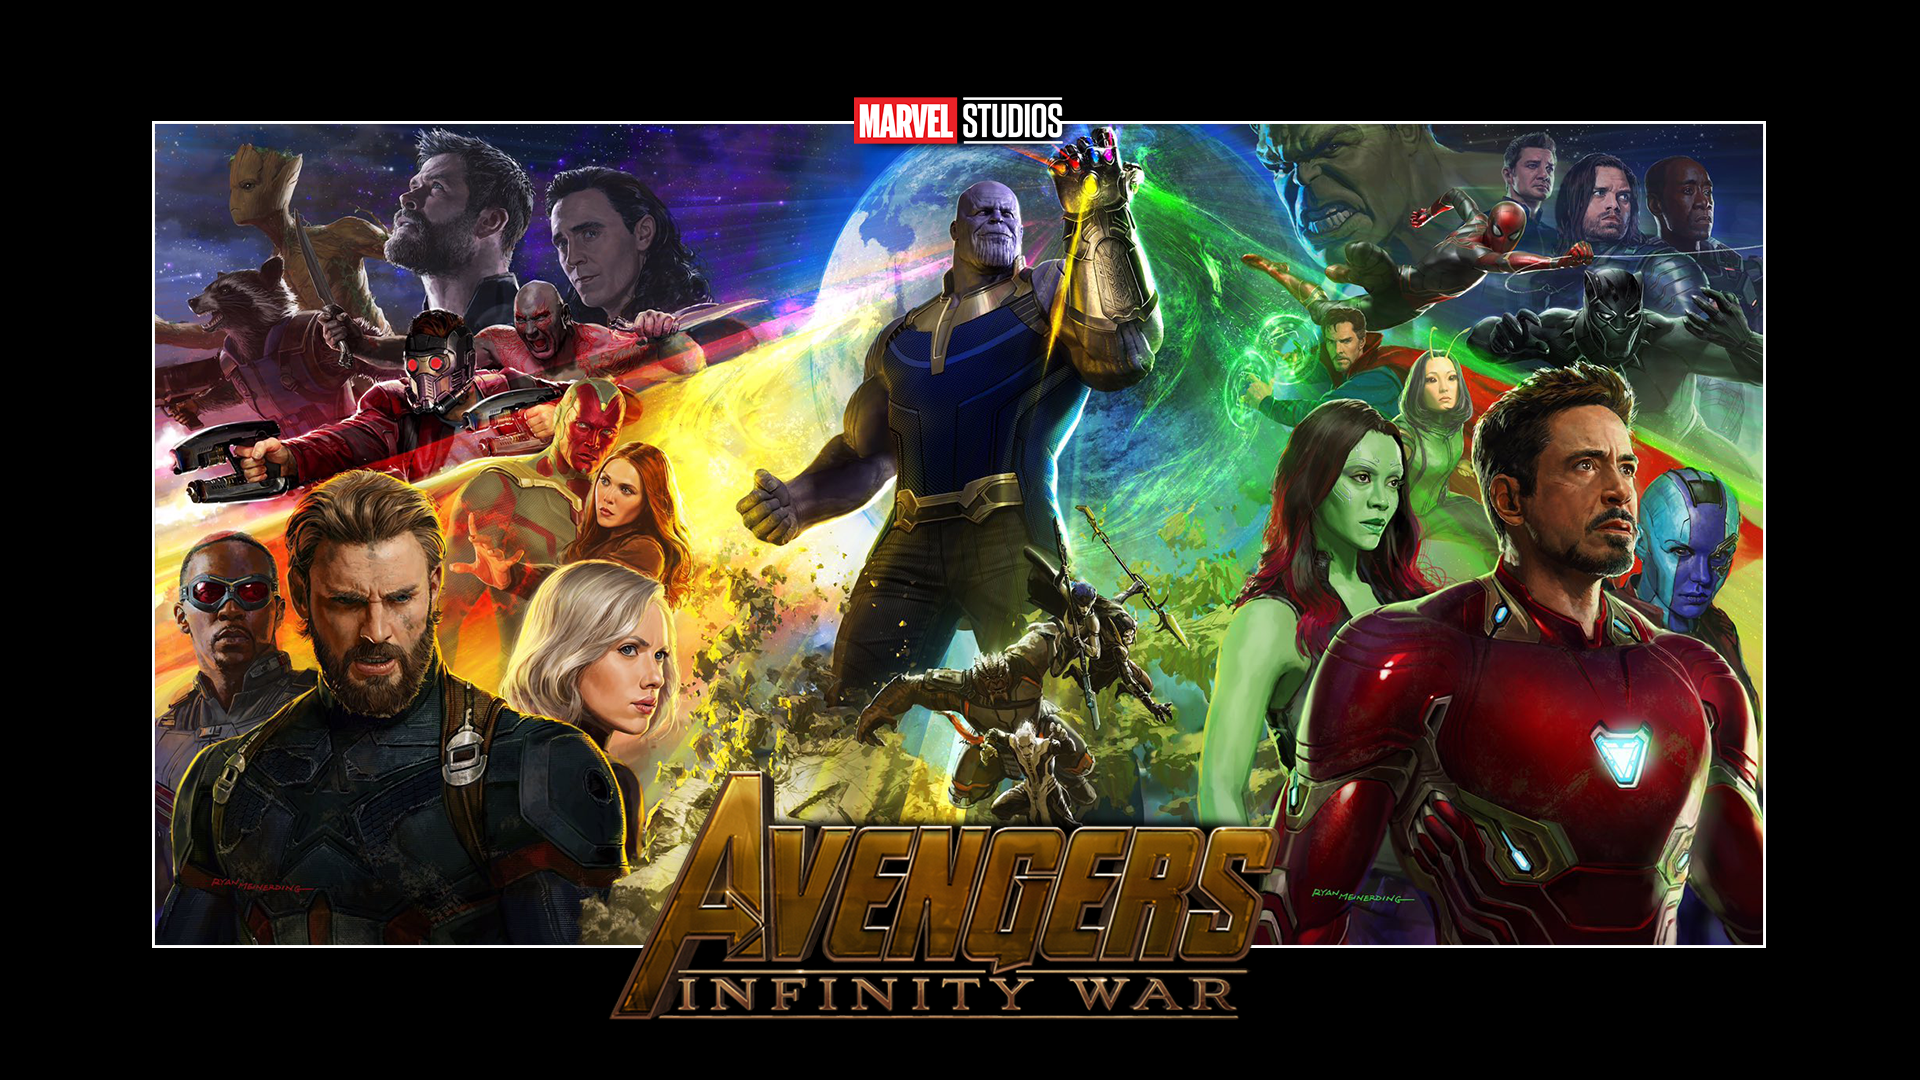 Avengers: Infinity War HD Wallpaper